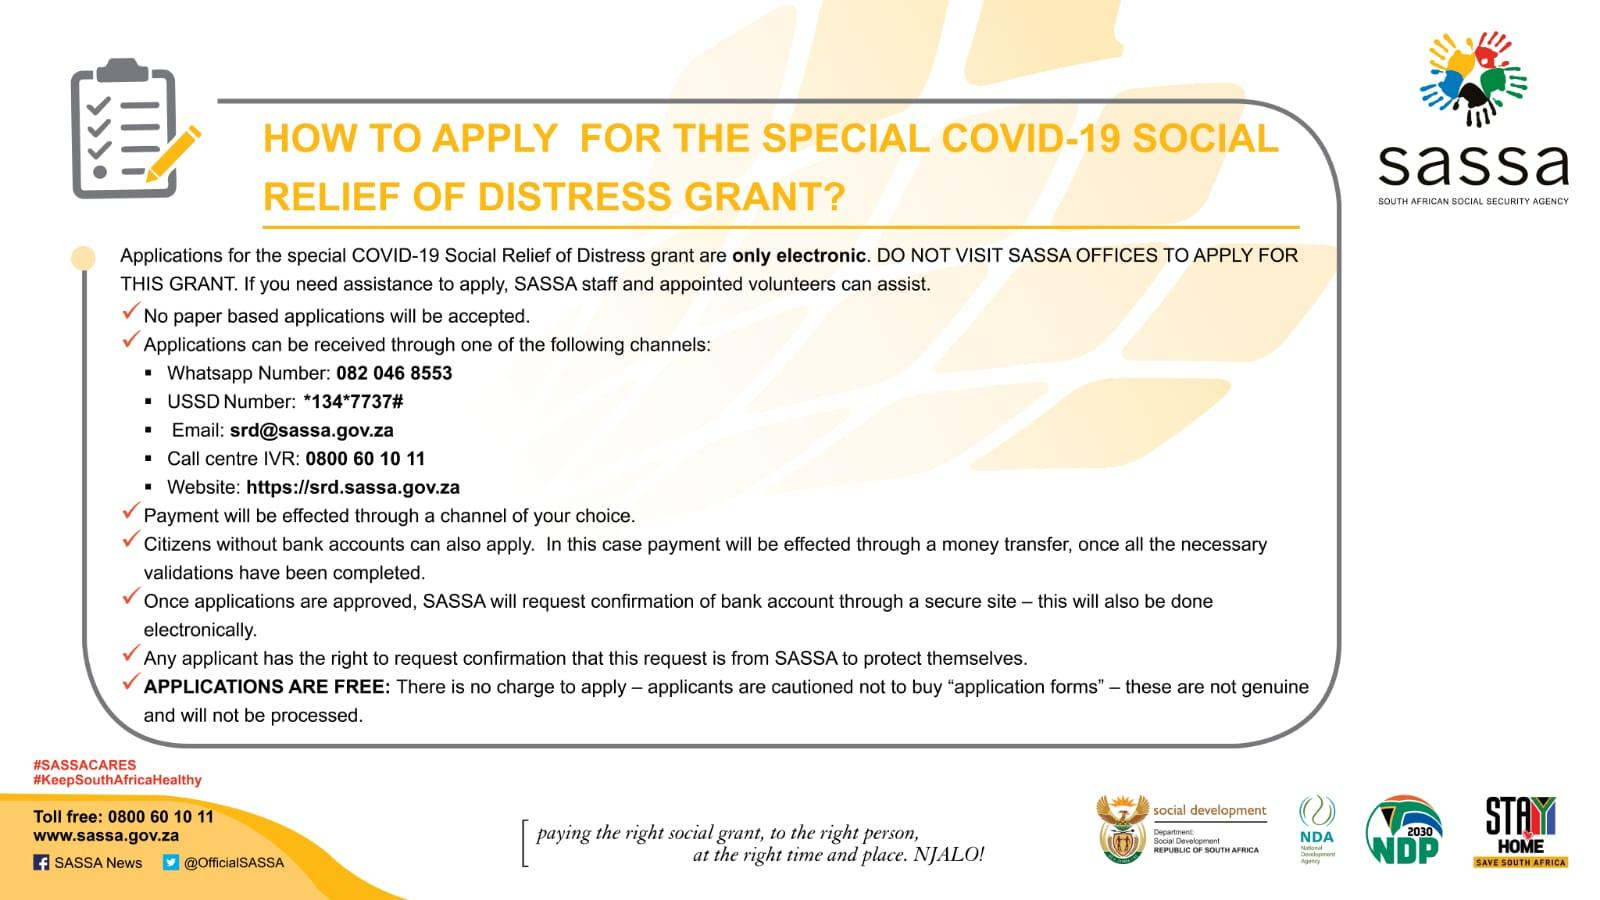 How to Apply for Social Relief of Distress